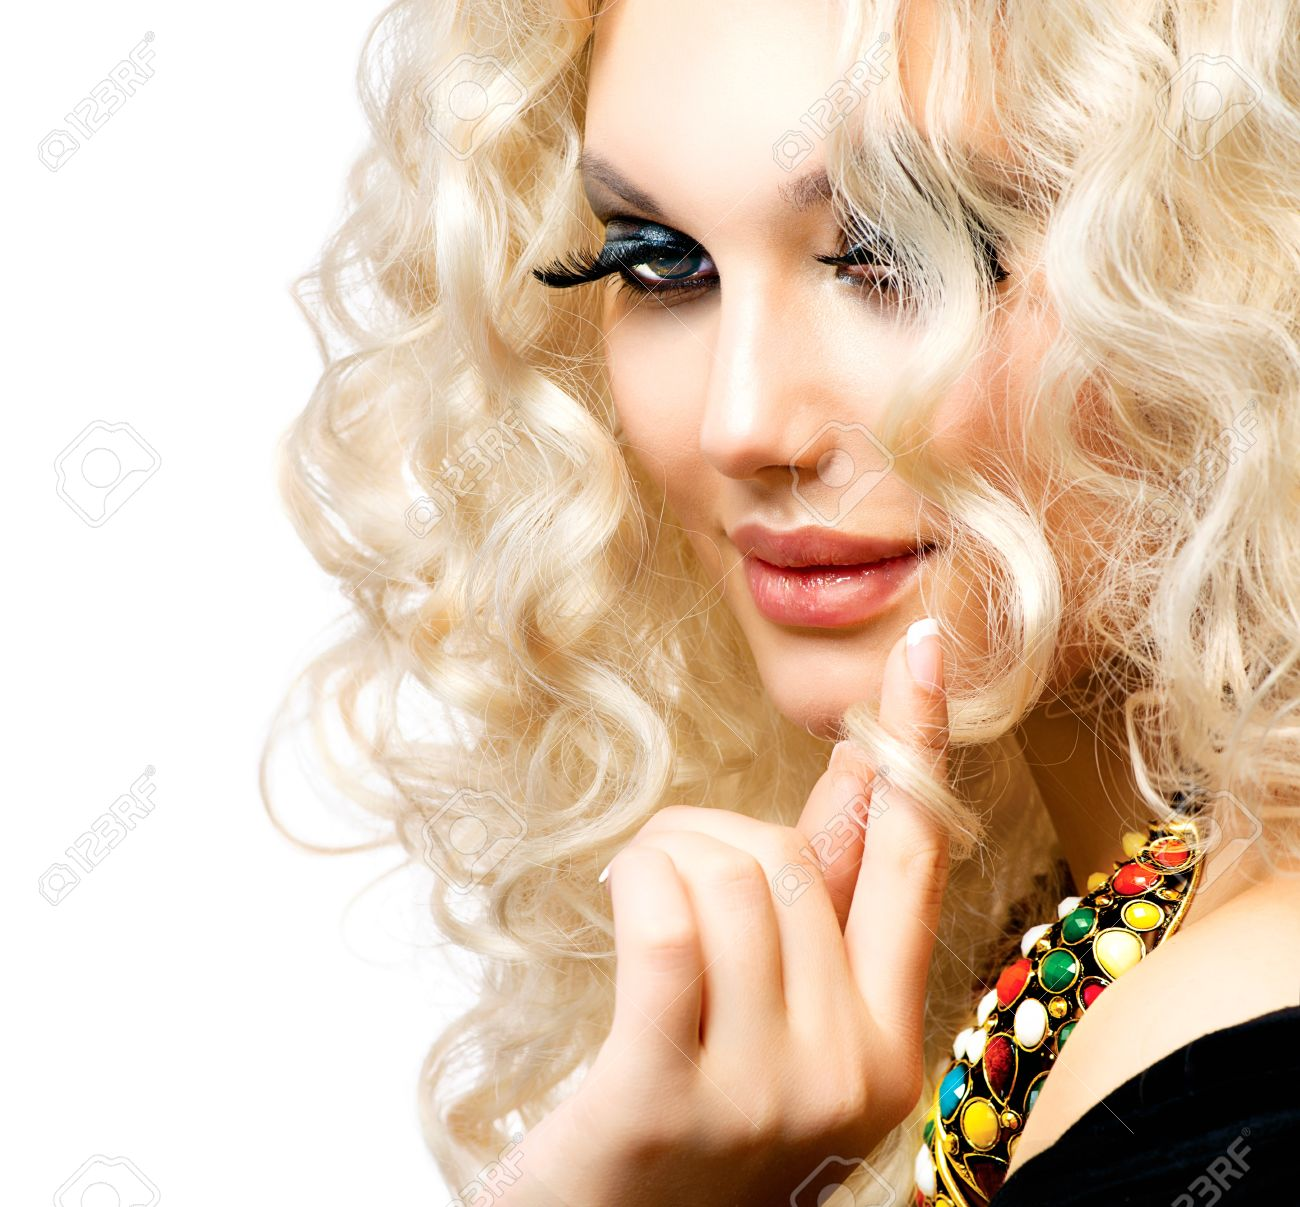 Beautiful Girl with Curly Blond Hair isolated on White Stock Photo - 17384051